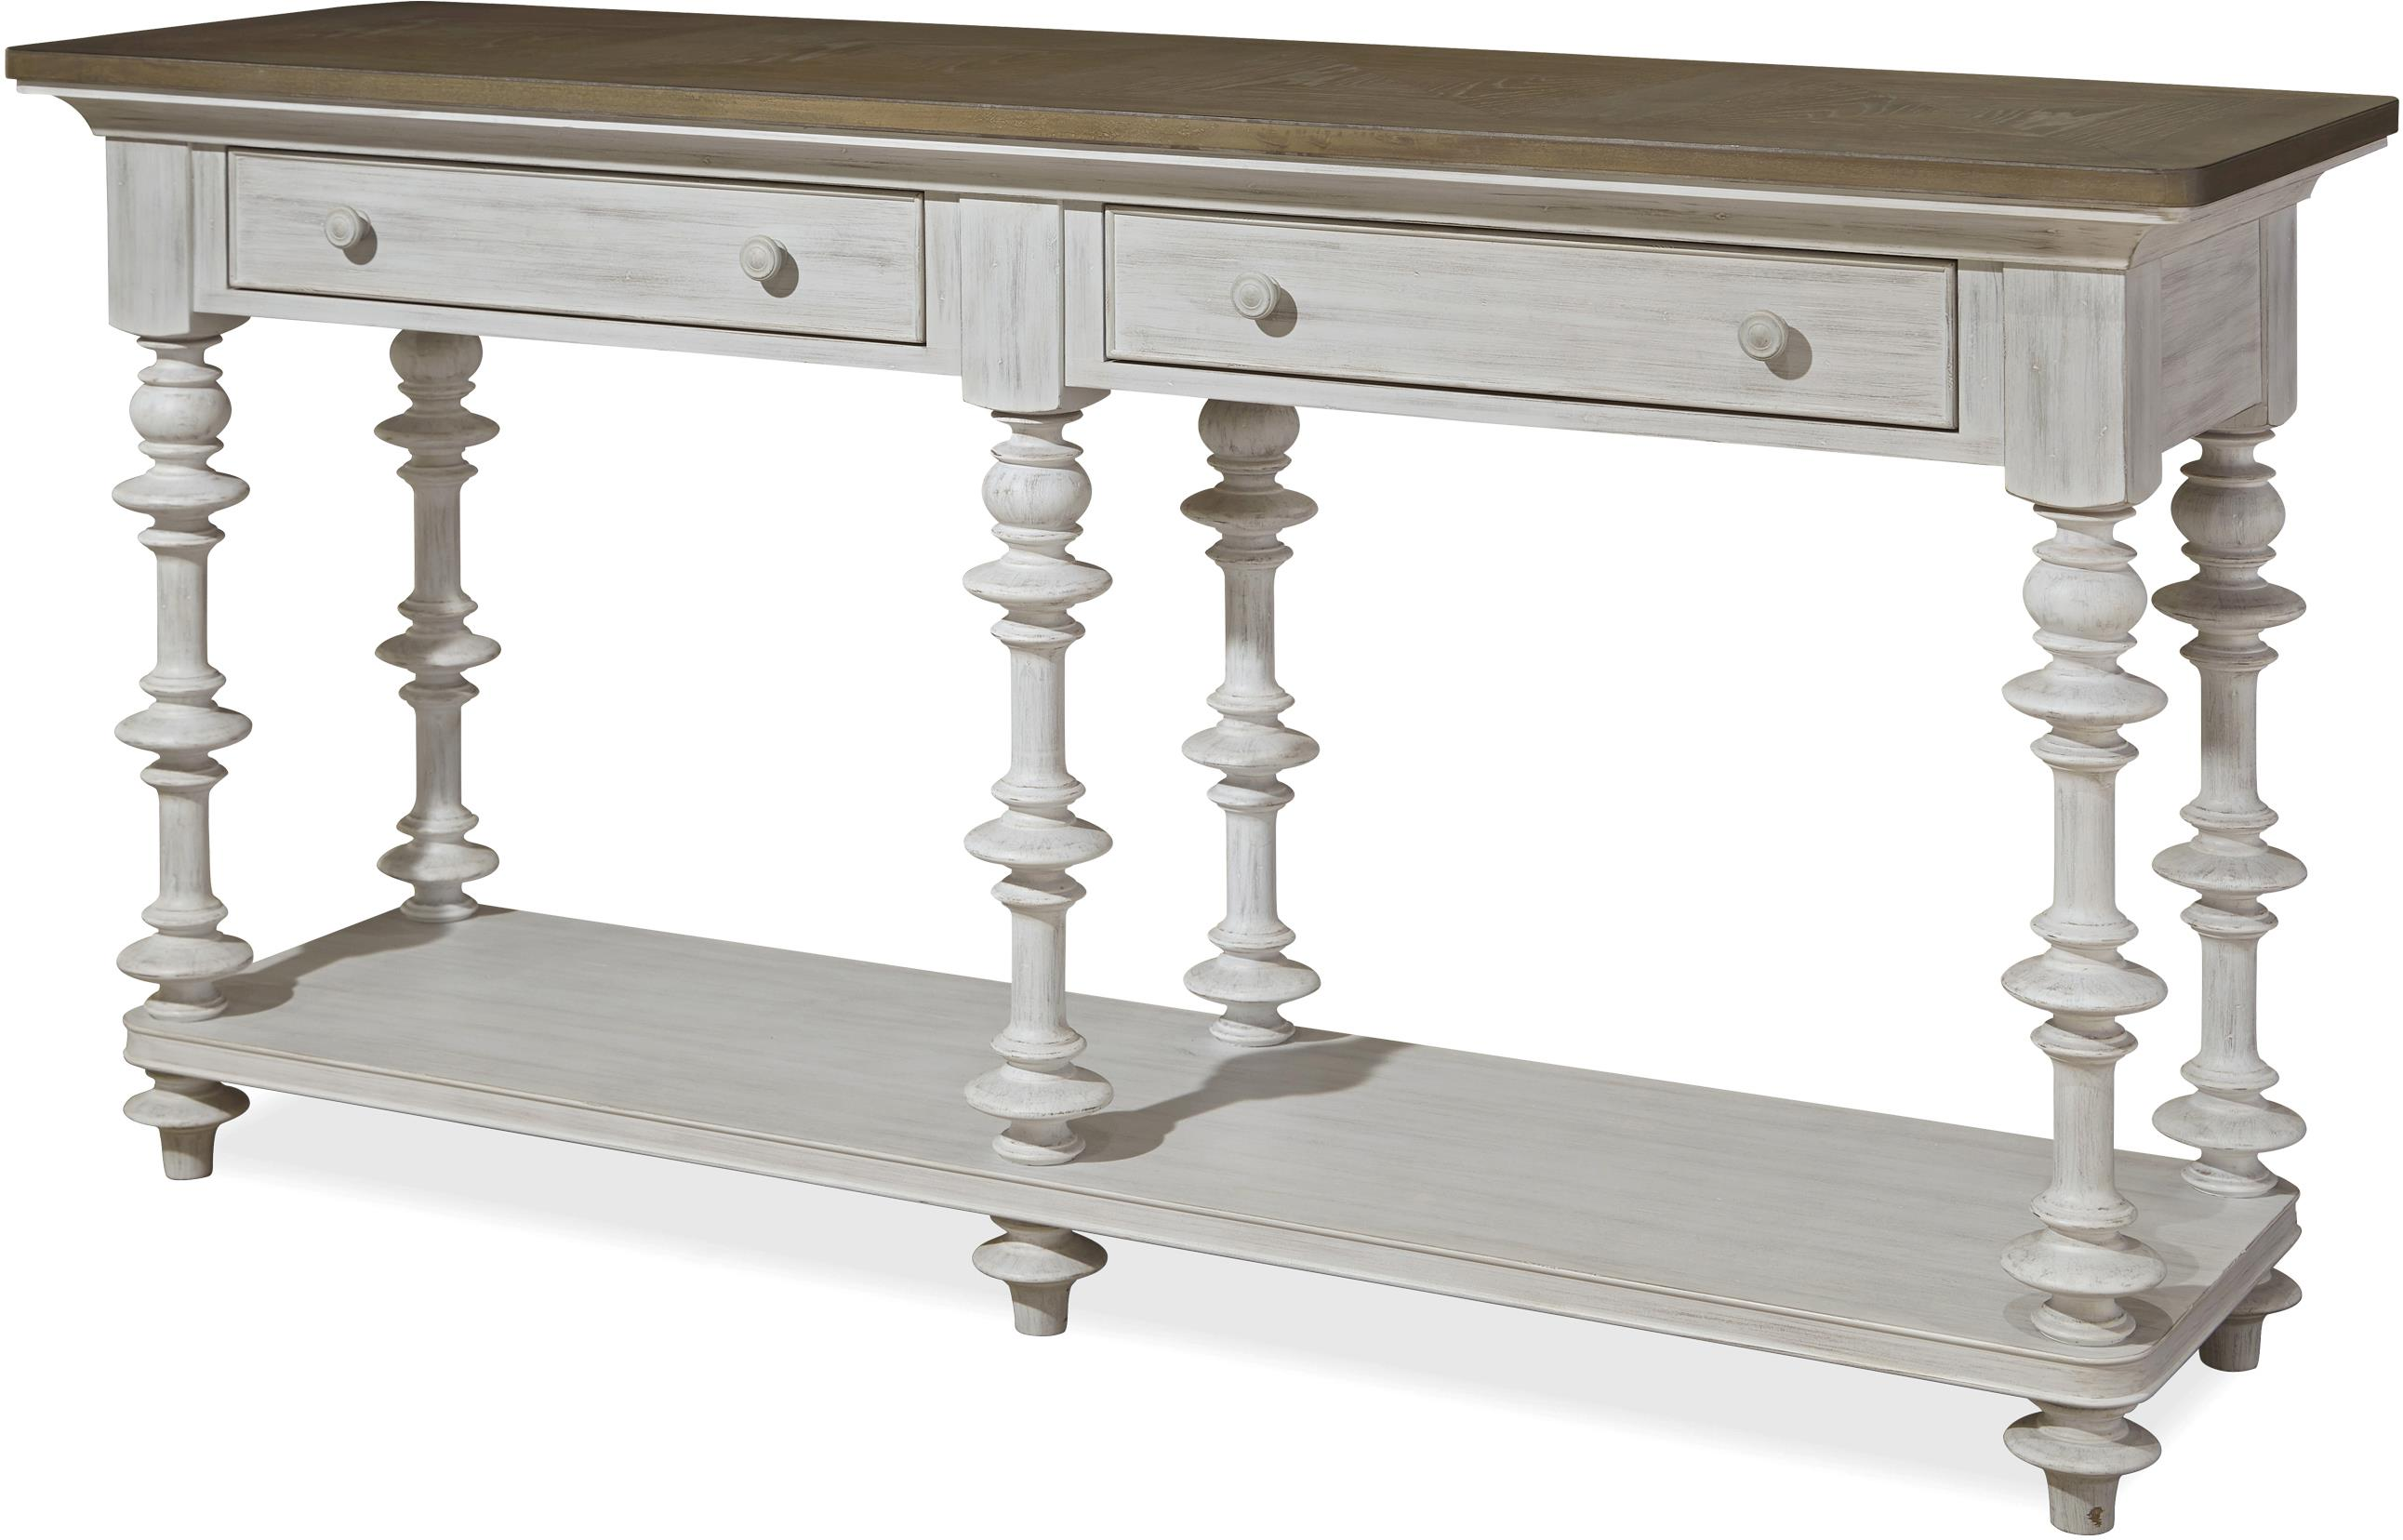 Universal Dogwood Console Table - Item Number: 597A803